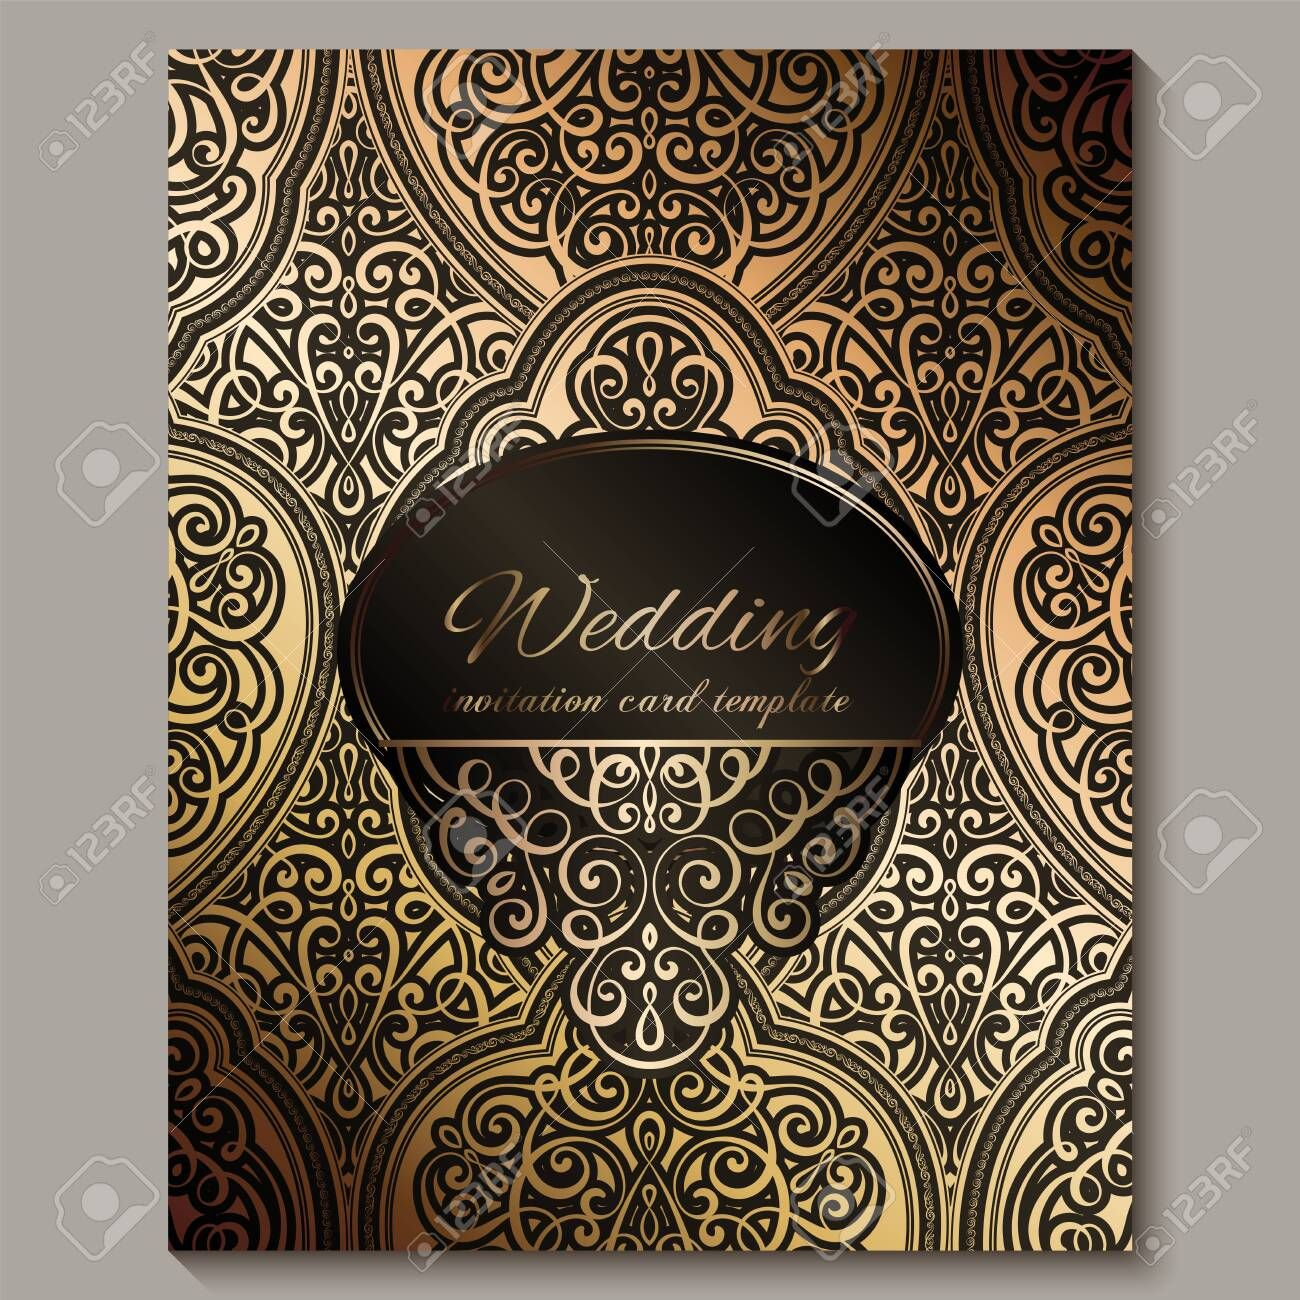 Wedding Invitation Card With Black And Gold Shiny Eastern And Baroque Rich Foliage Wedding Invitation Card Template Wedding Invitation Cards Invitation Cards